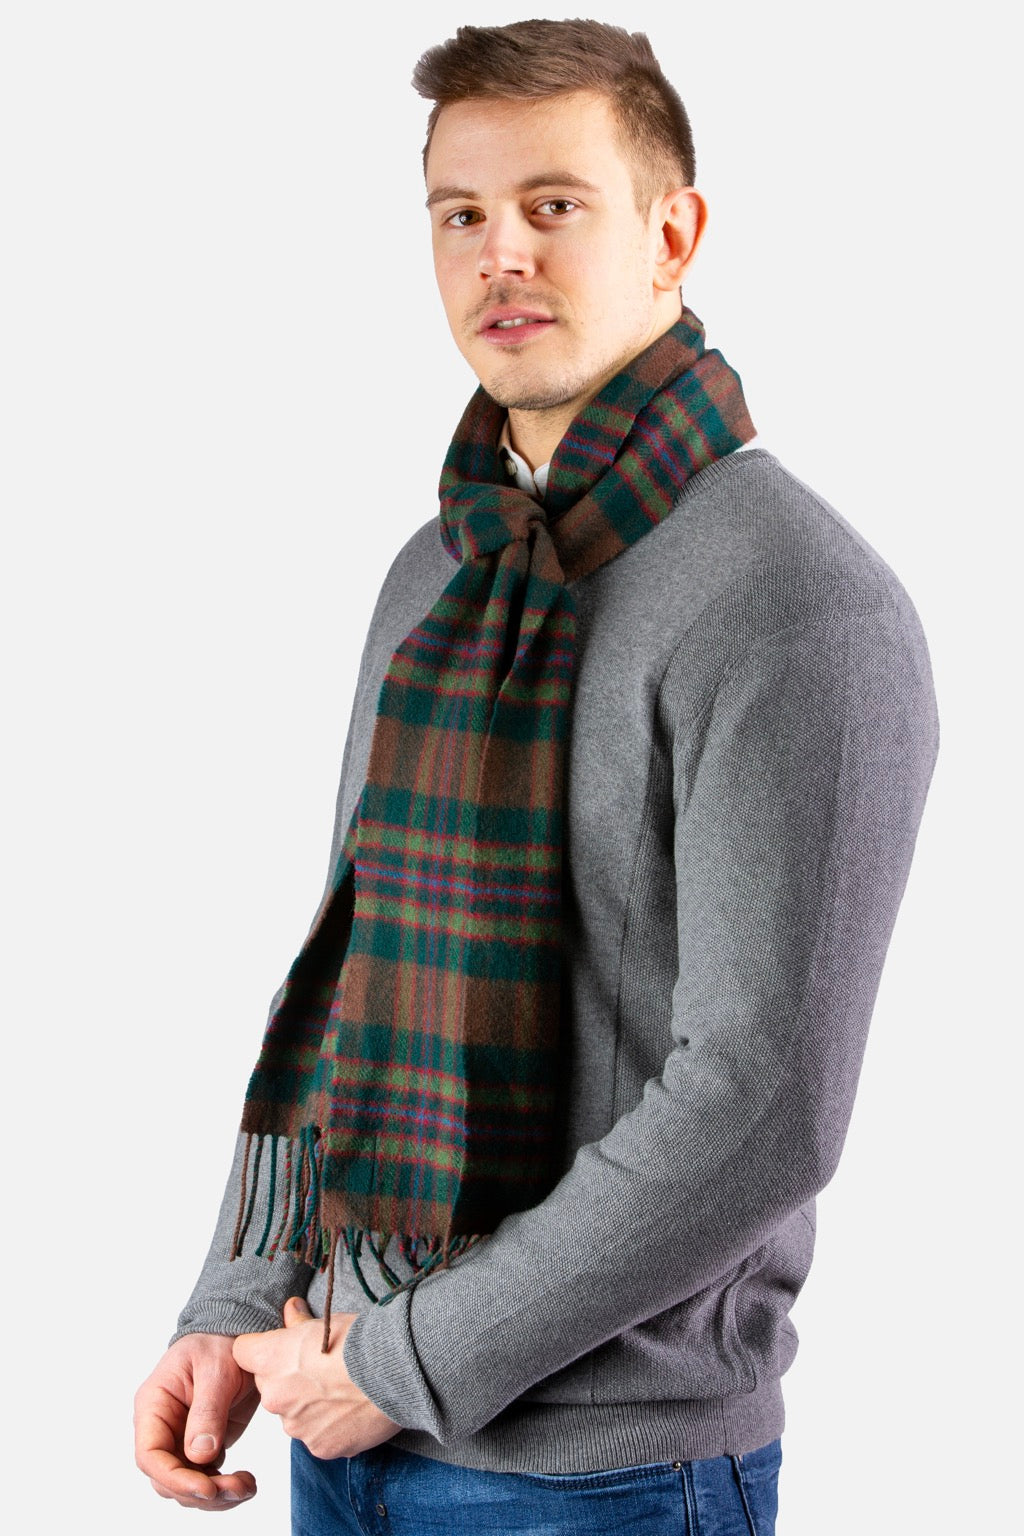 John Muir Way Scarf